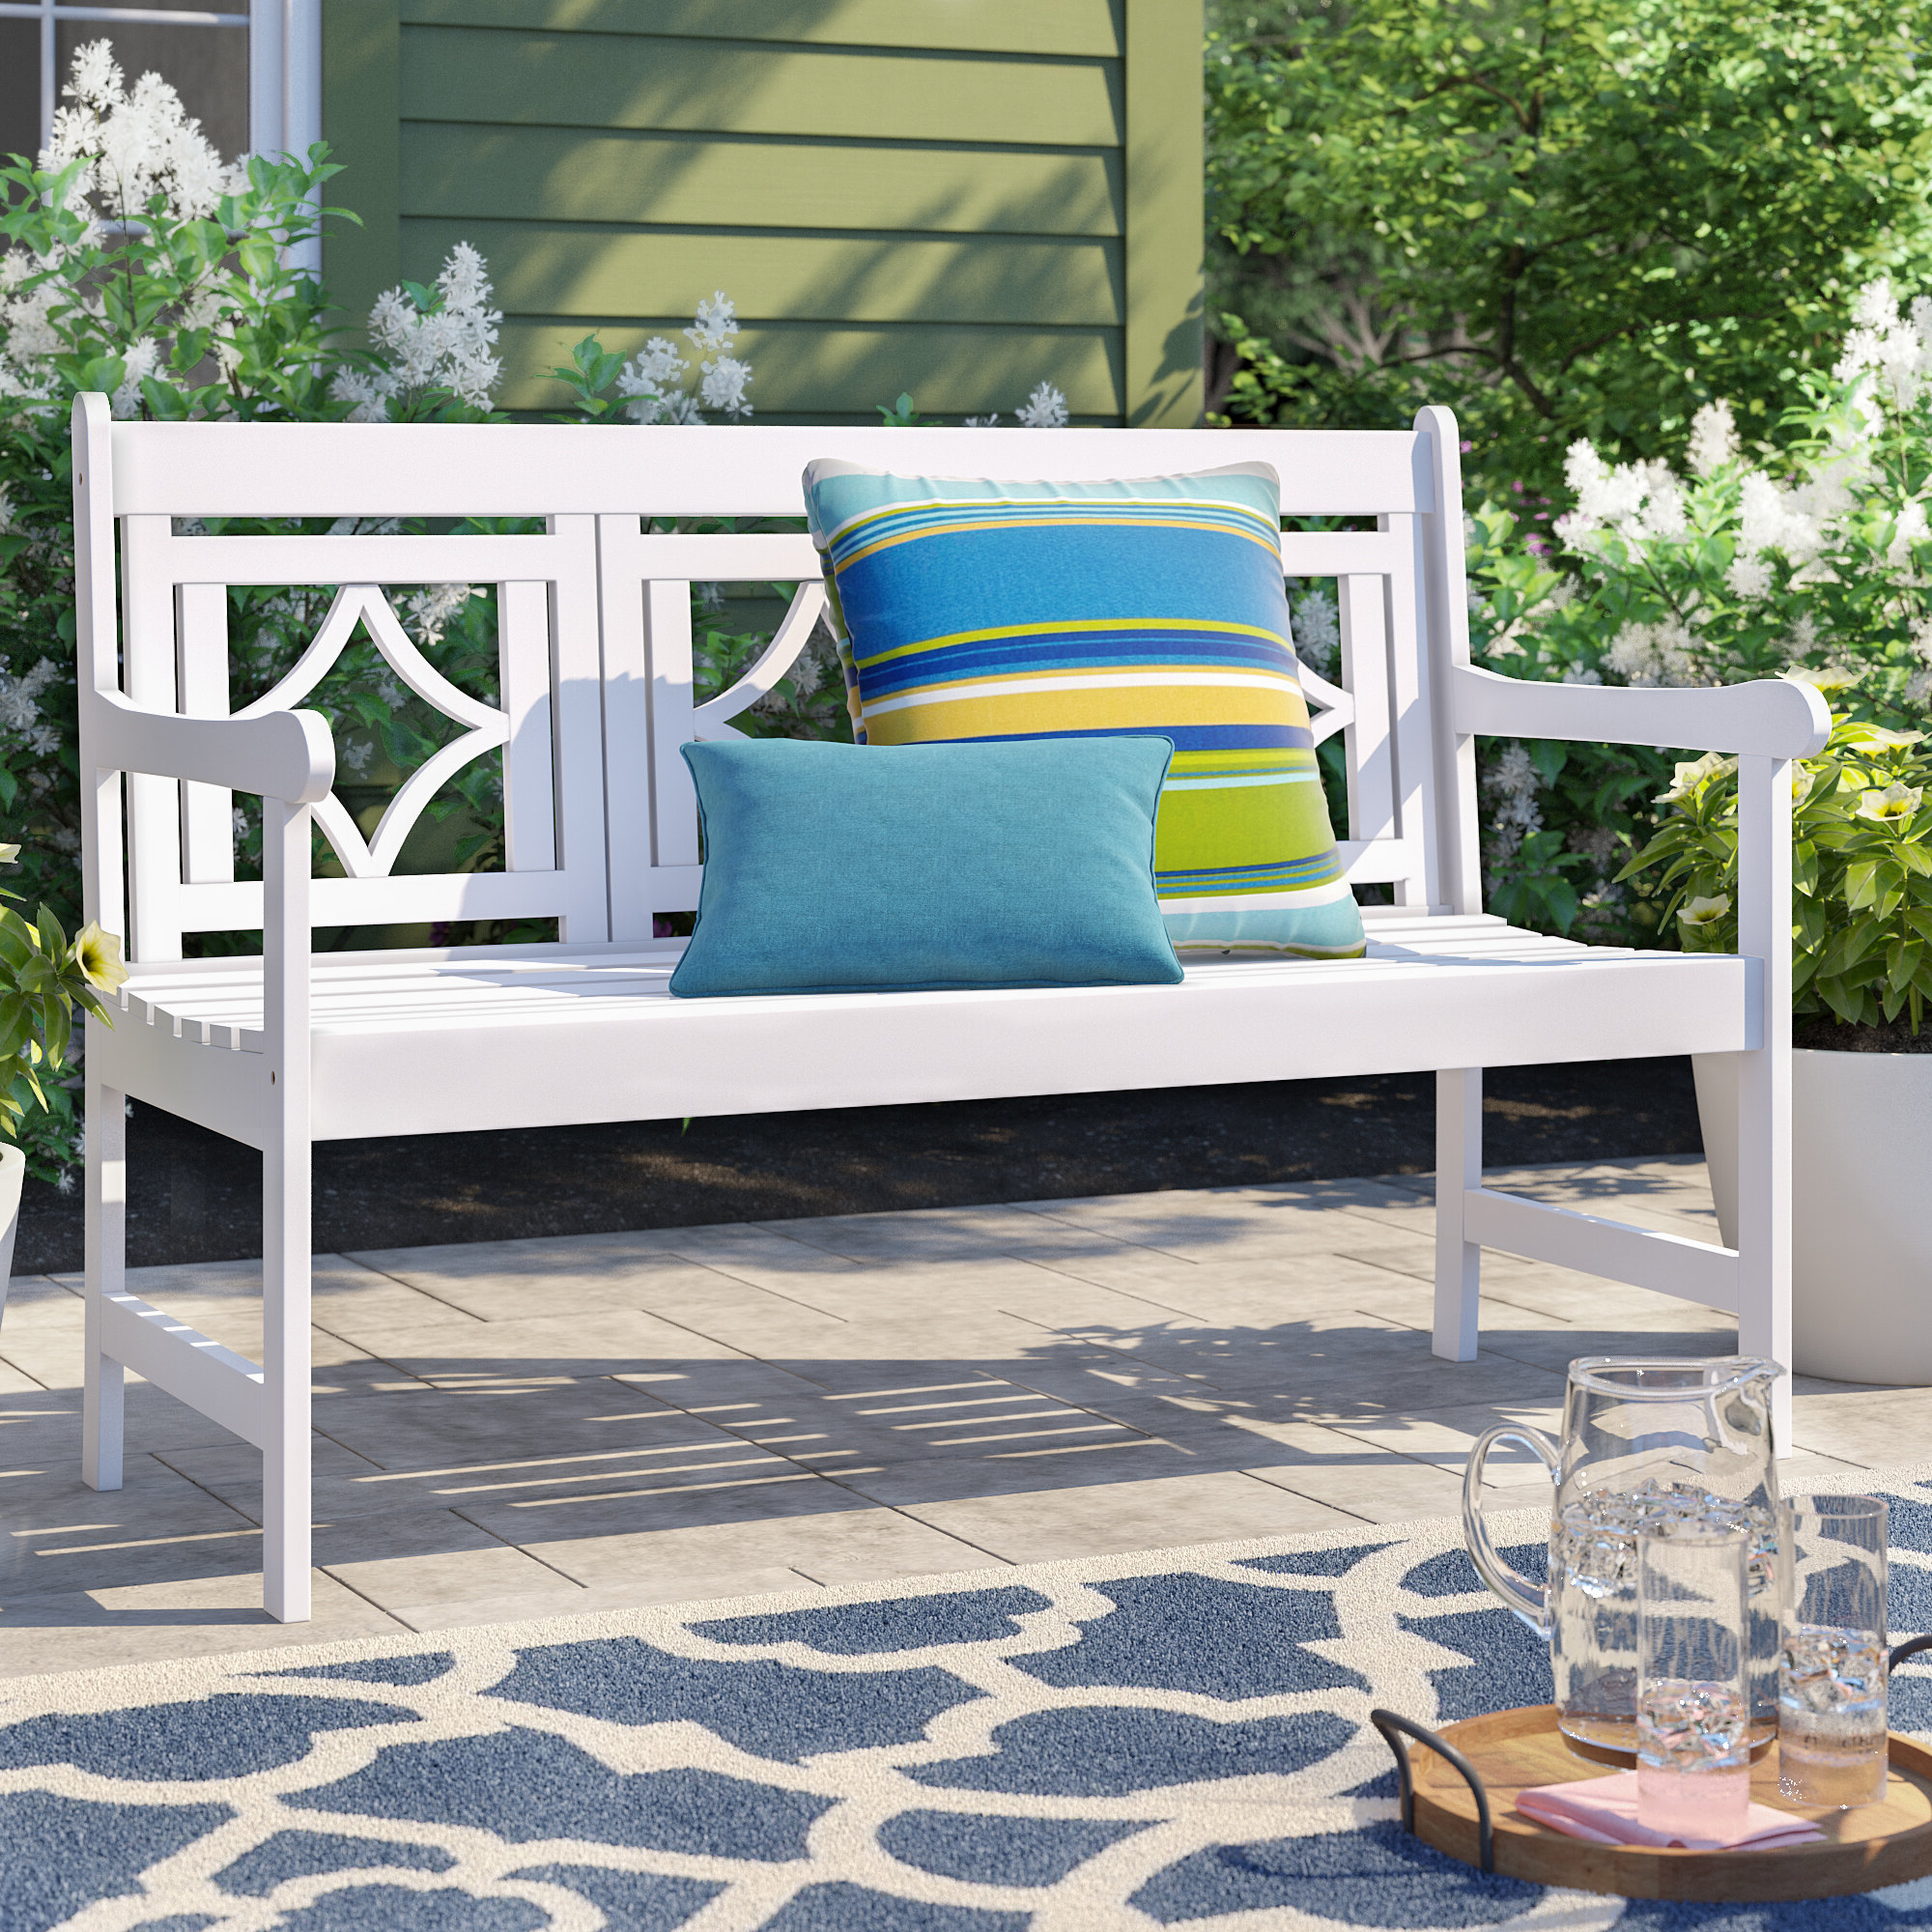 Most Current Delagarza Patio Diamond Wooden Garden Bench Inside Amabel Patio Diamond Wooden Garden Benches (View 5 of 30)